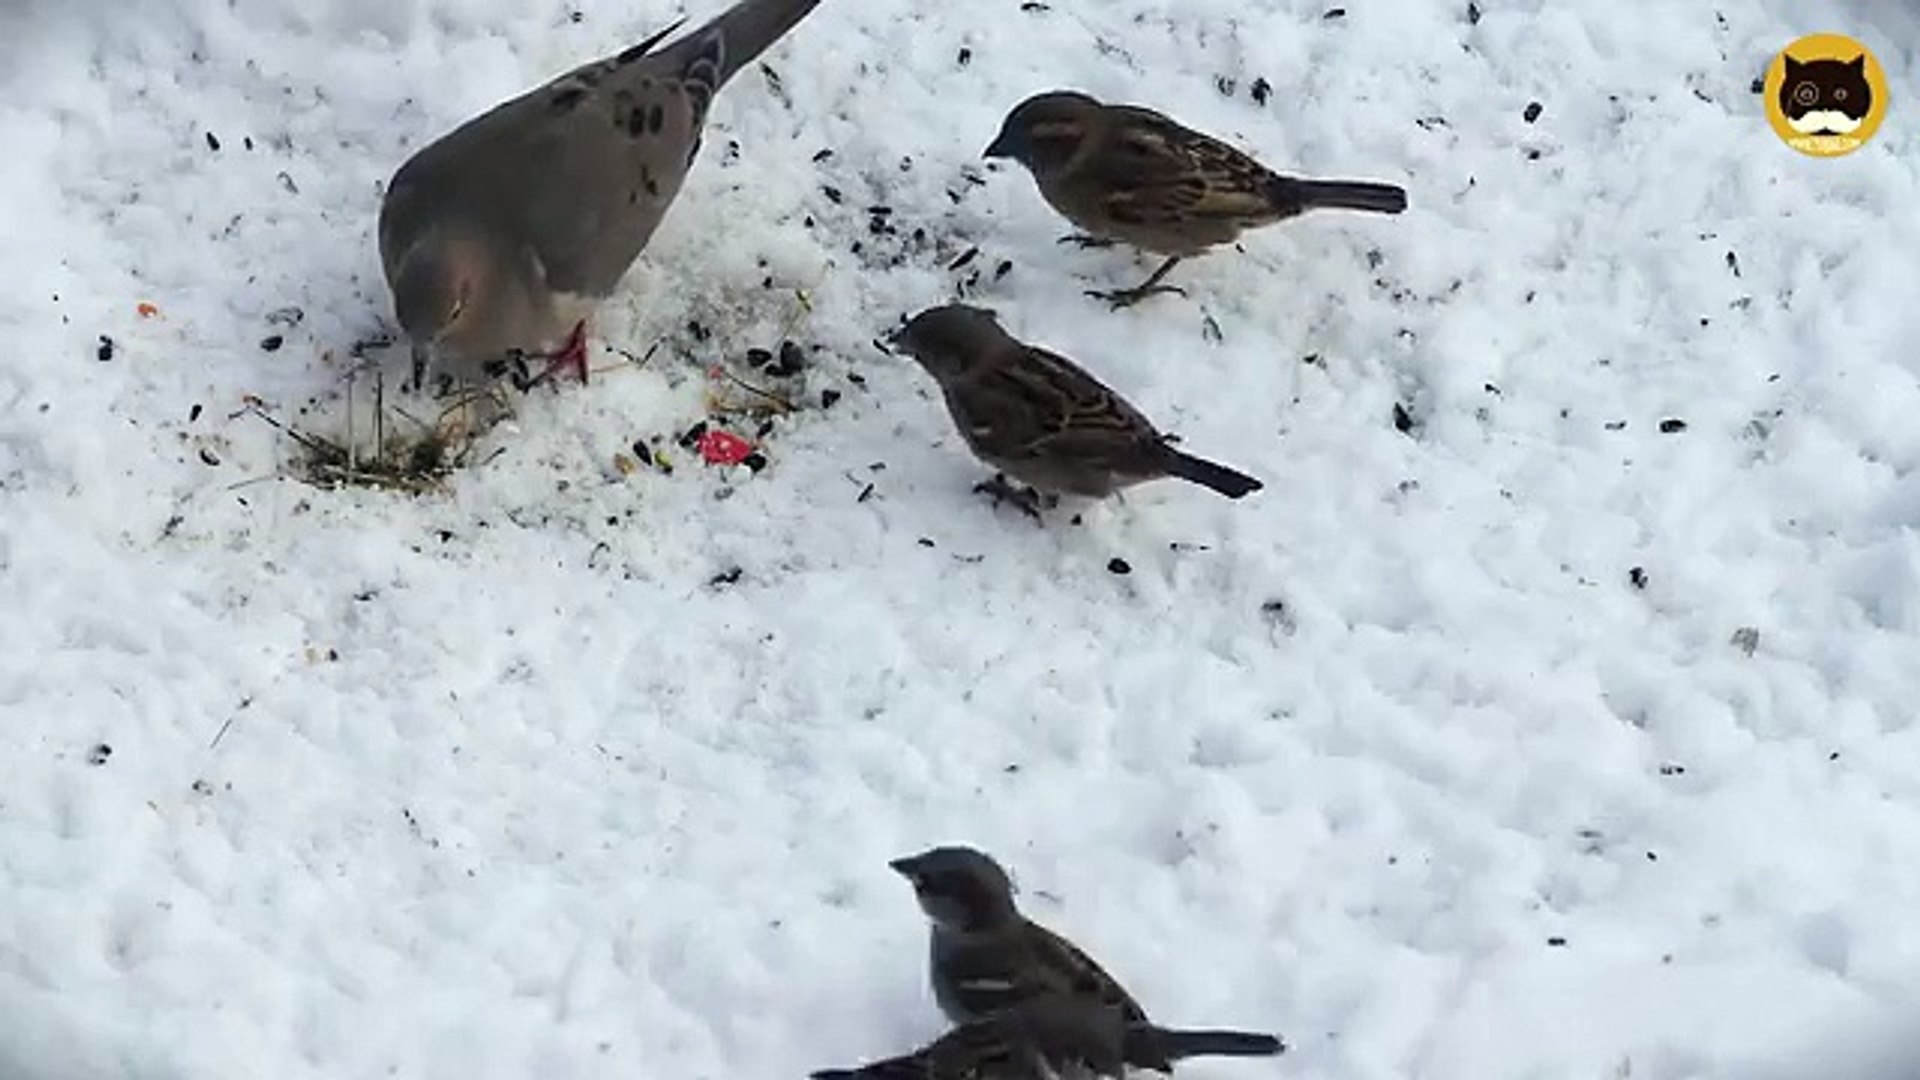 ENTERTAINMENT VIDEO FOR CATS. Winter Birds #5. House Finch, Sparrows, Mourning Dove.